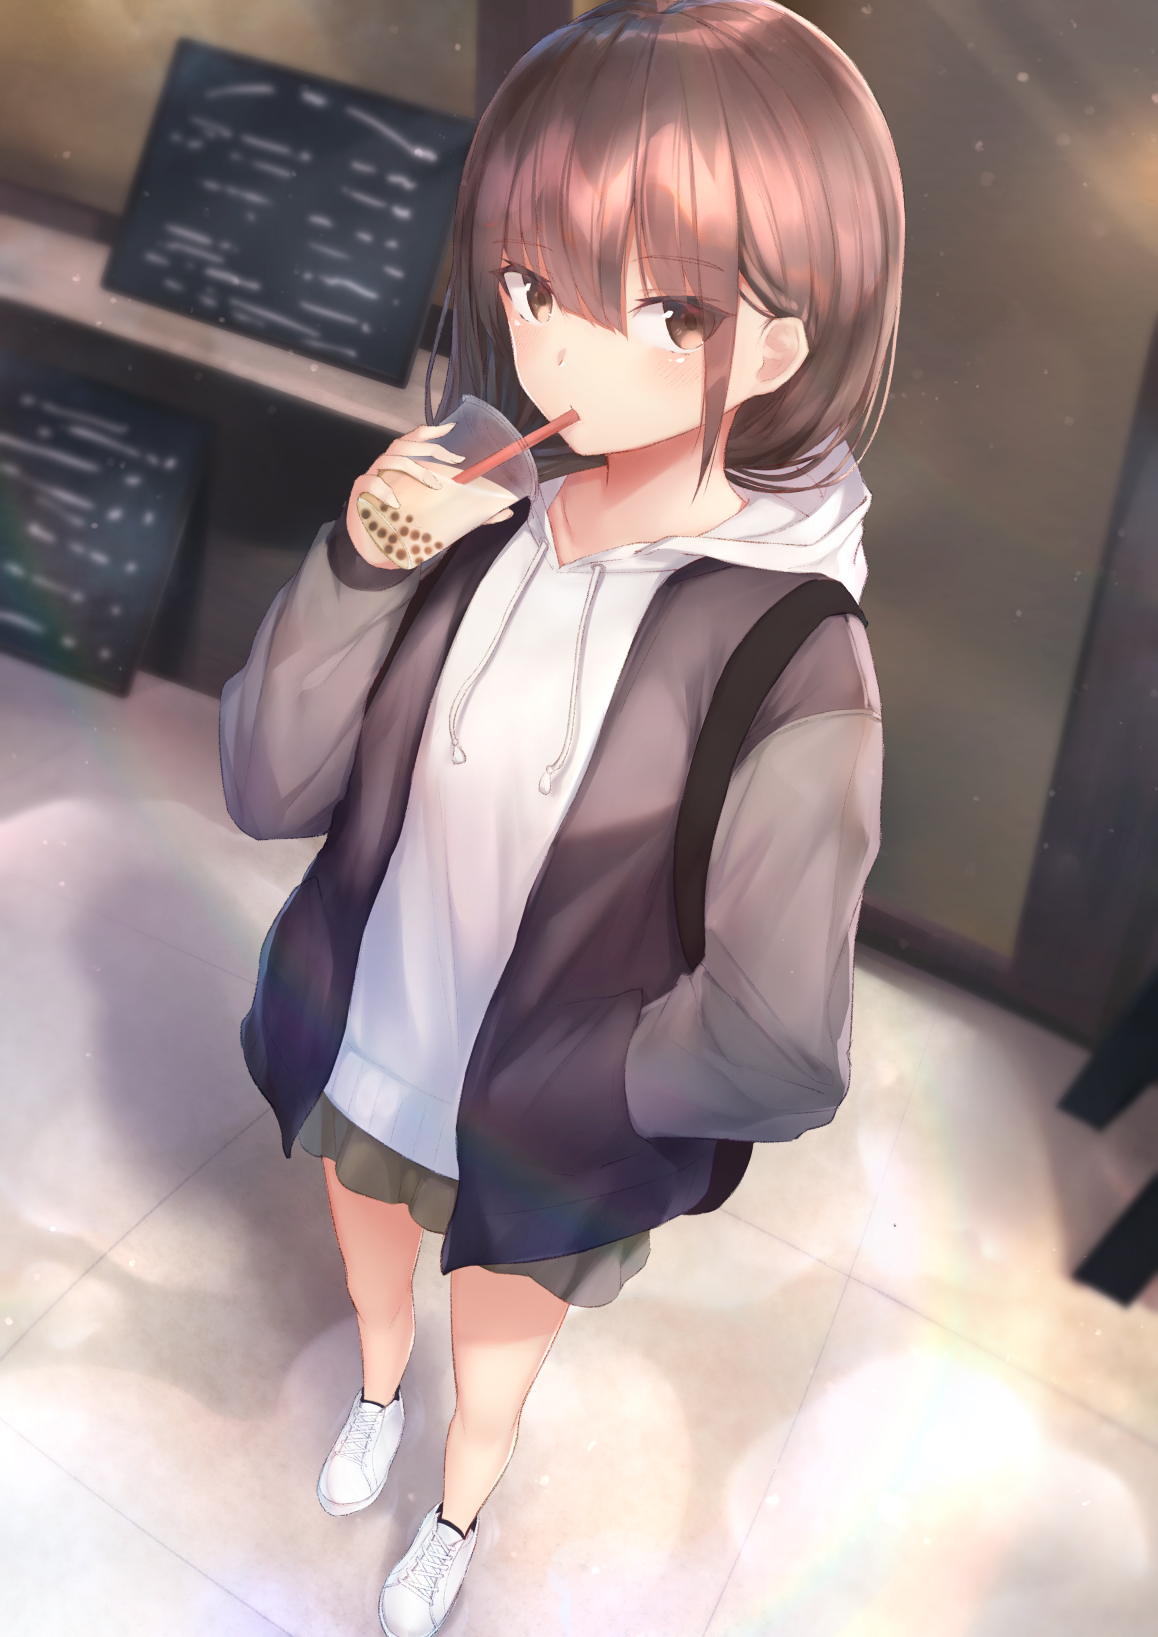 anime girl with short brown hair Pictures [p. 1 of 250] | Blingee.com